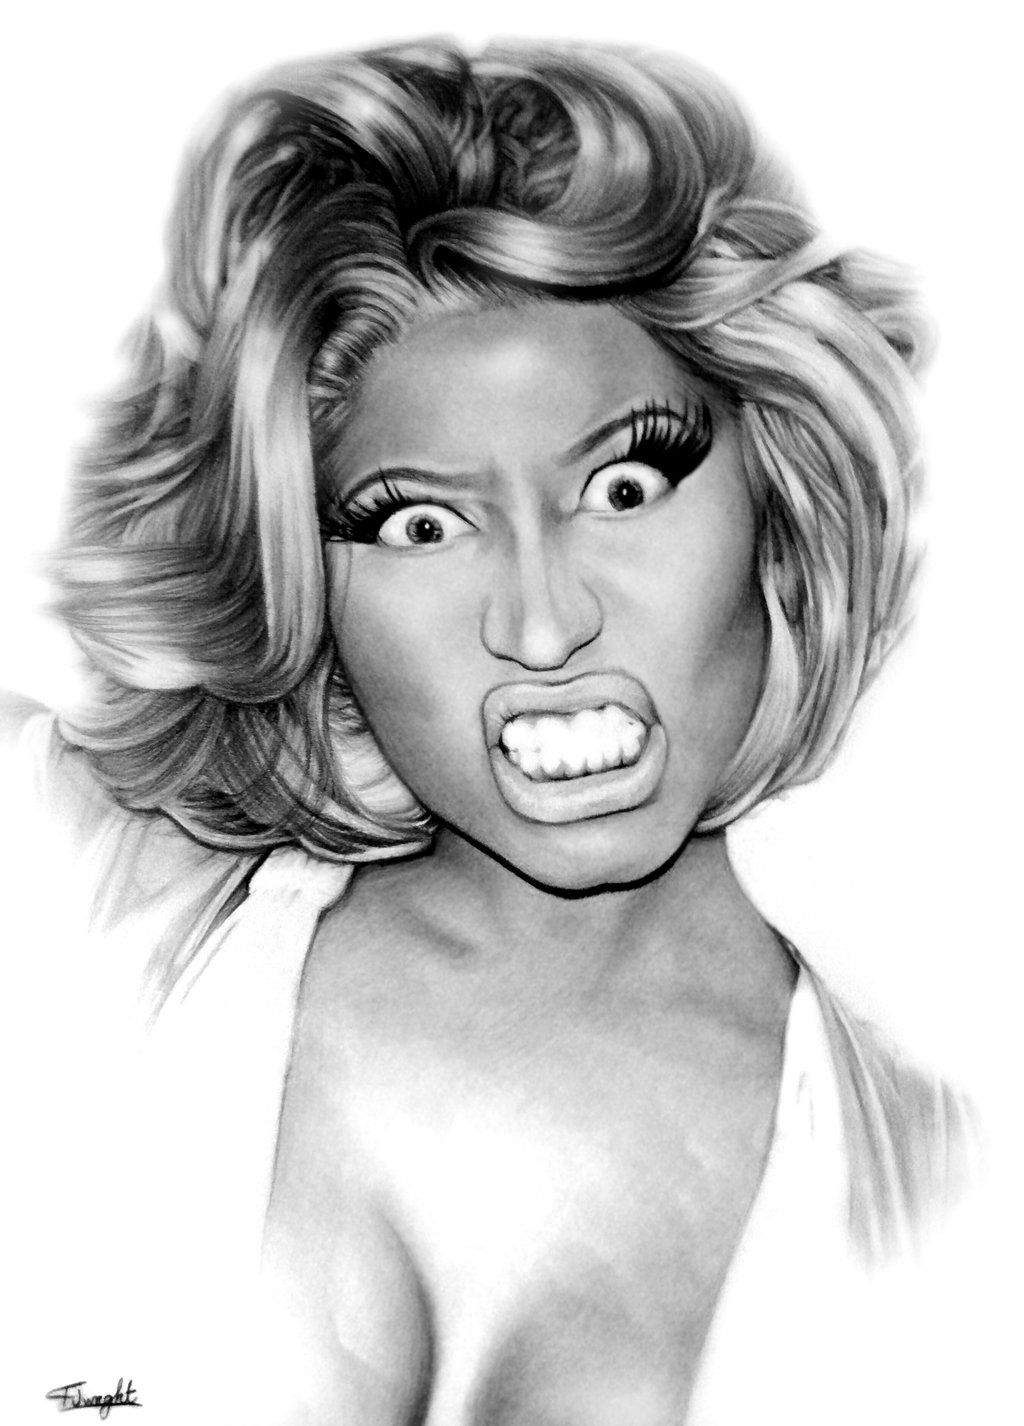 Nicki minaj by tomwright666 on deviantart celebrities nicki minaj by tomwright666 on deviantart cool drawingspencil altavistaventures Images